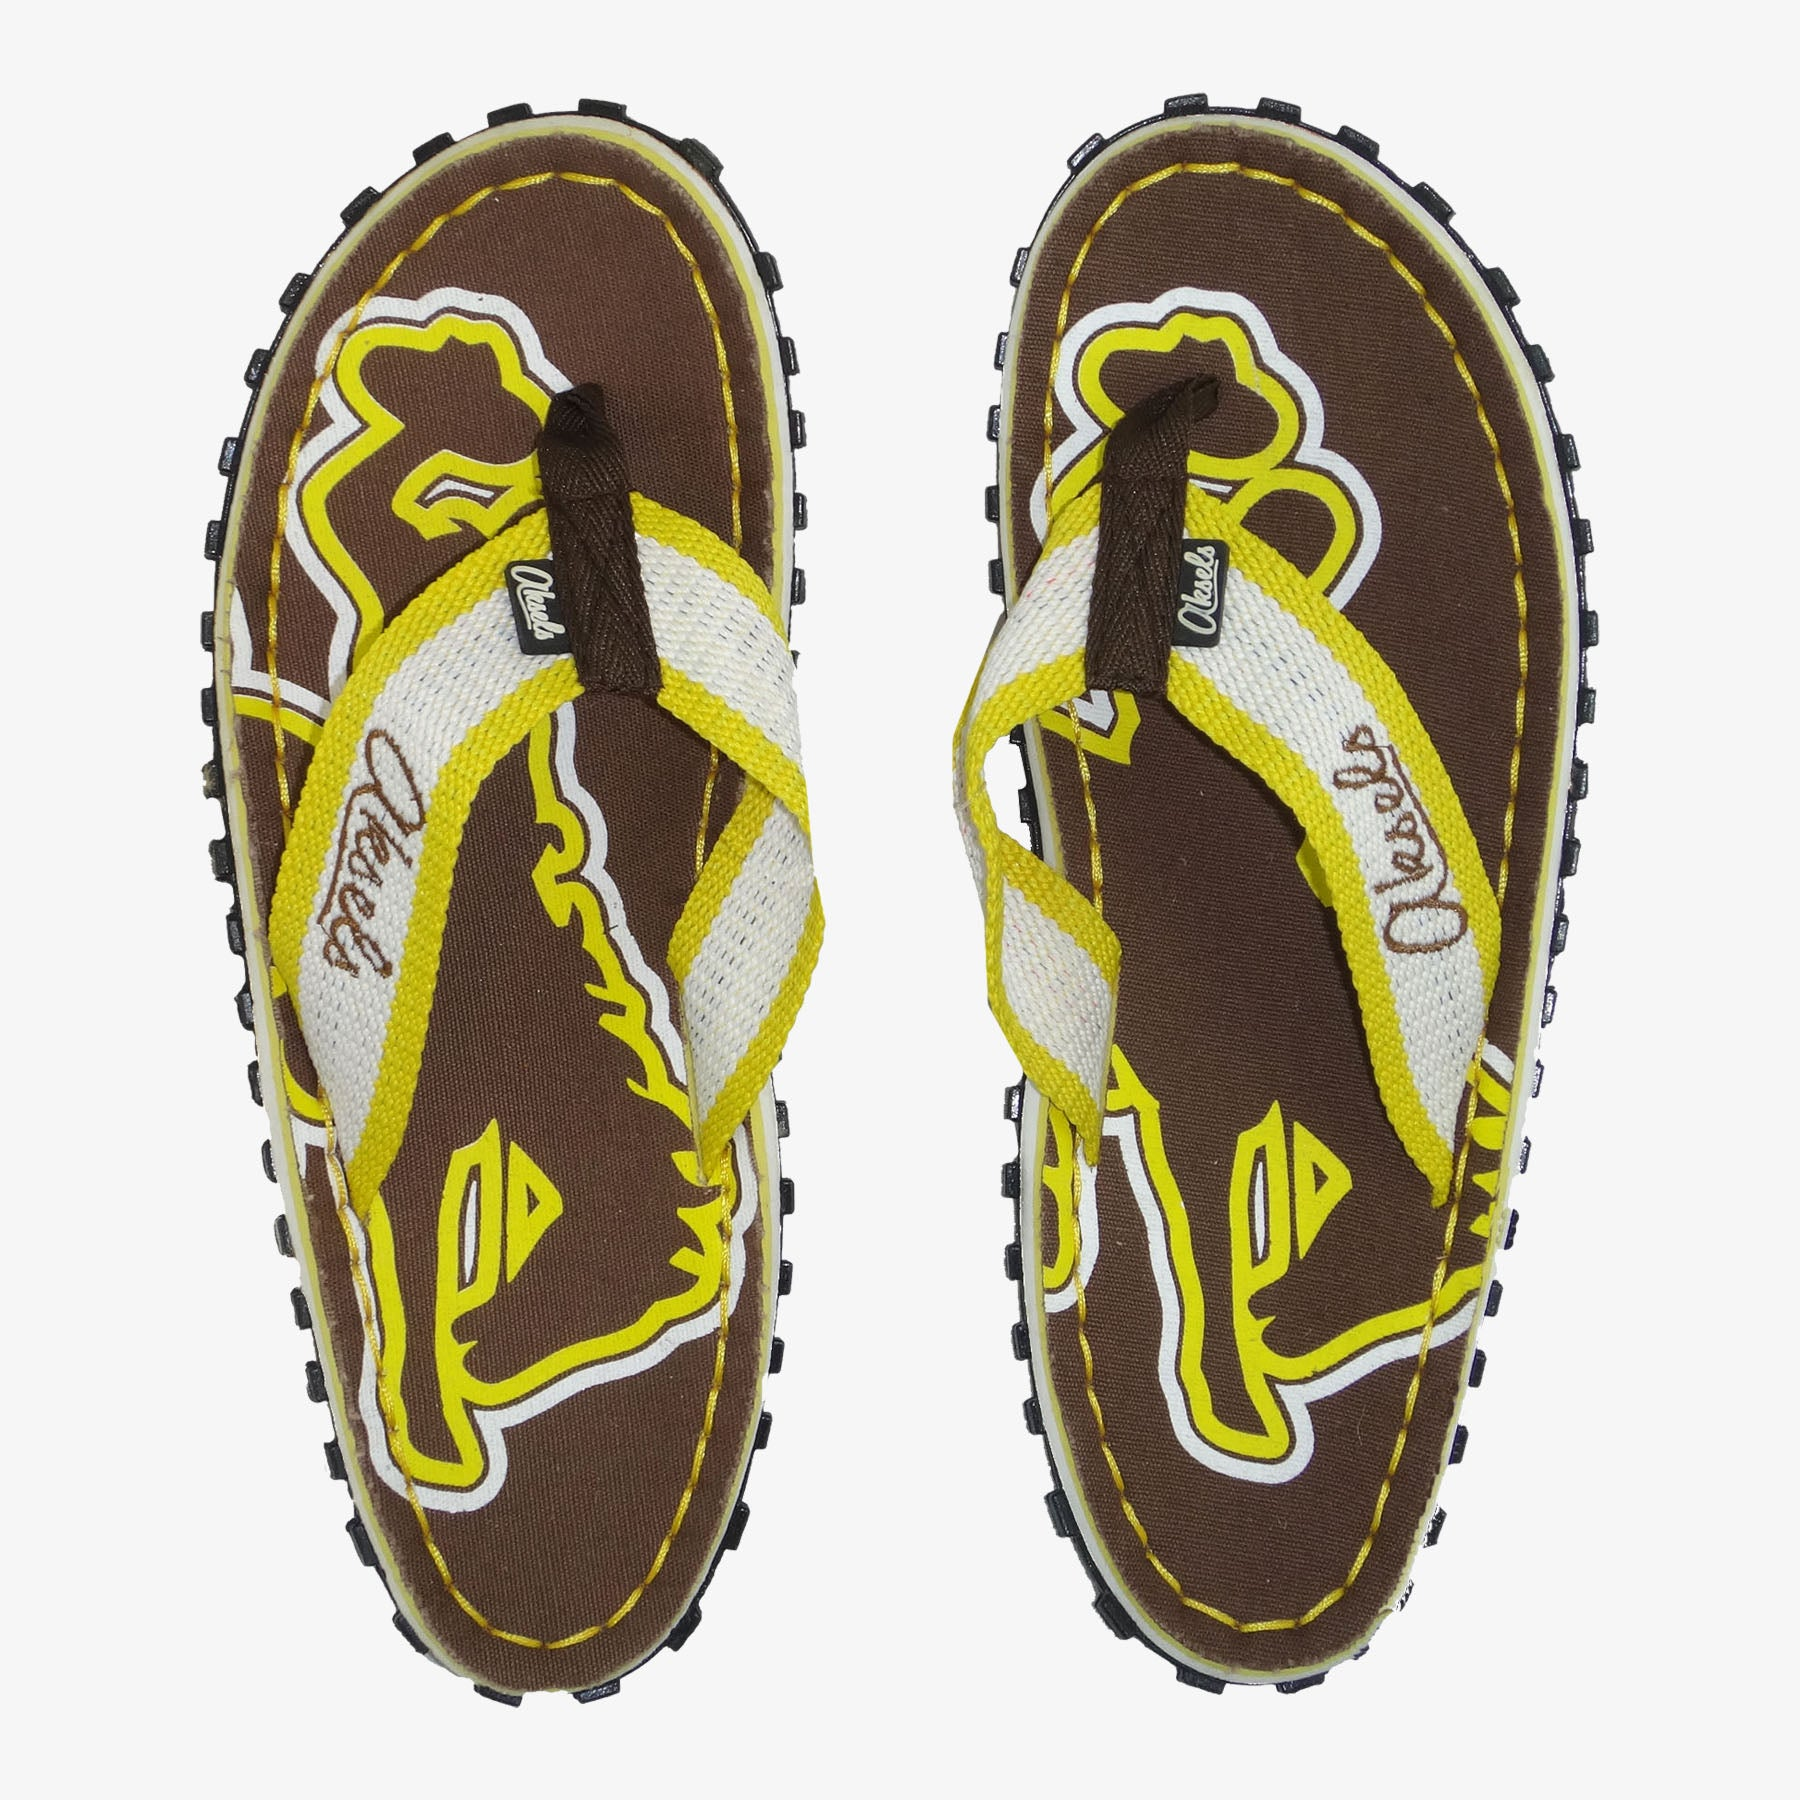 Wyoming Sandals